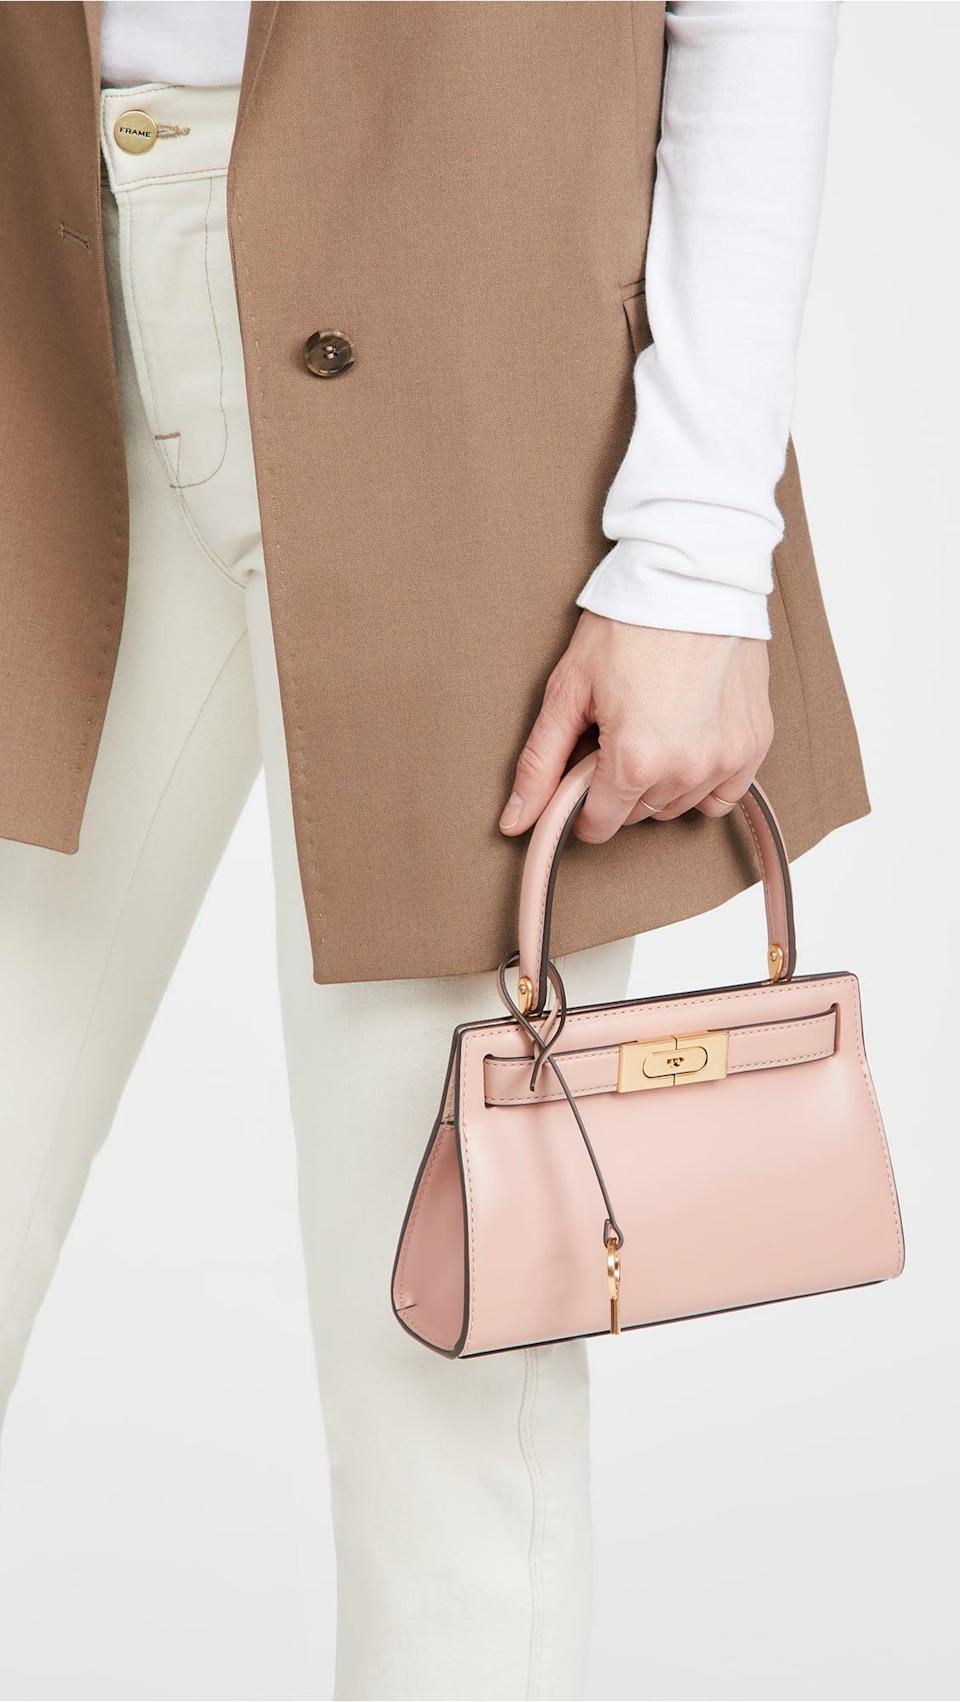 <p>This <span>Tory Burch Lee Radziwill Petite Bag</span> ($498) is timeless and elegant. Plus, the pink is adorable.</p>